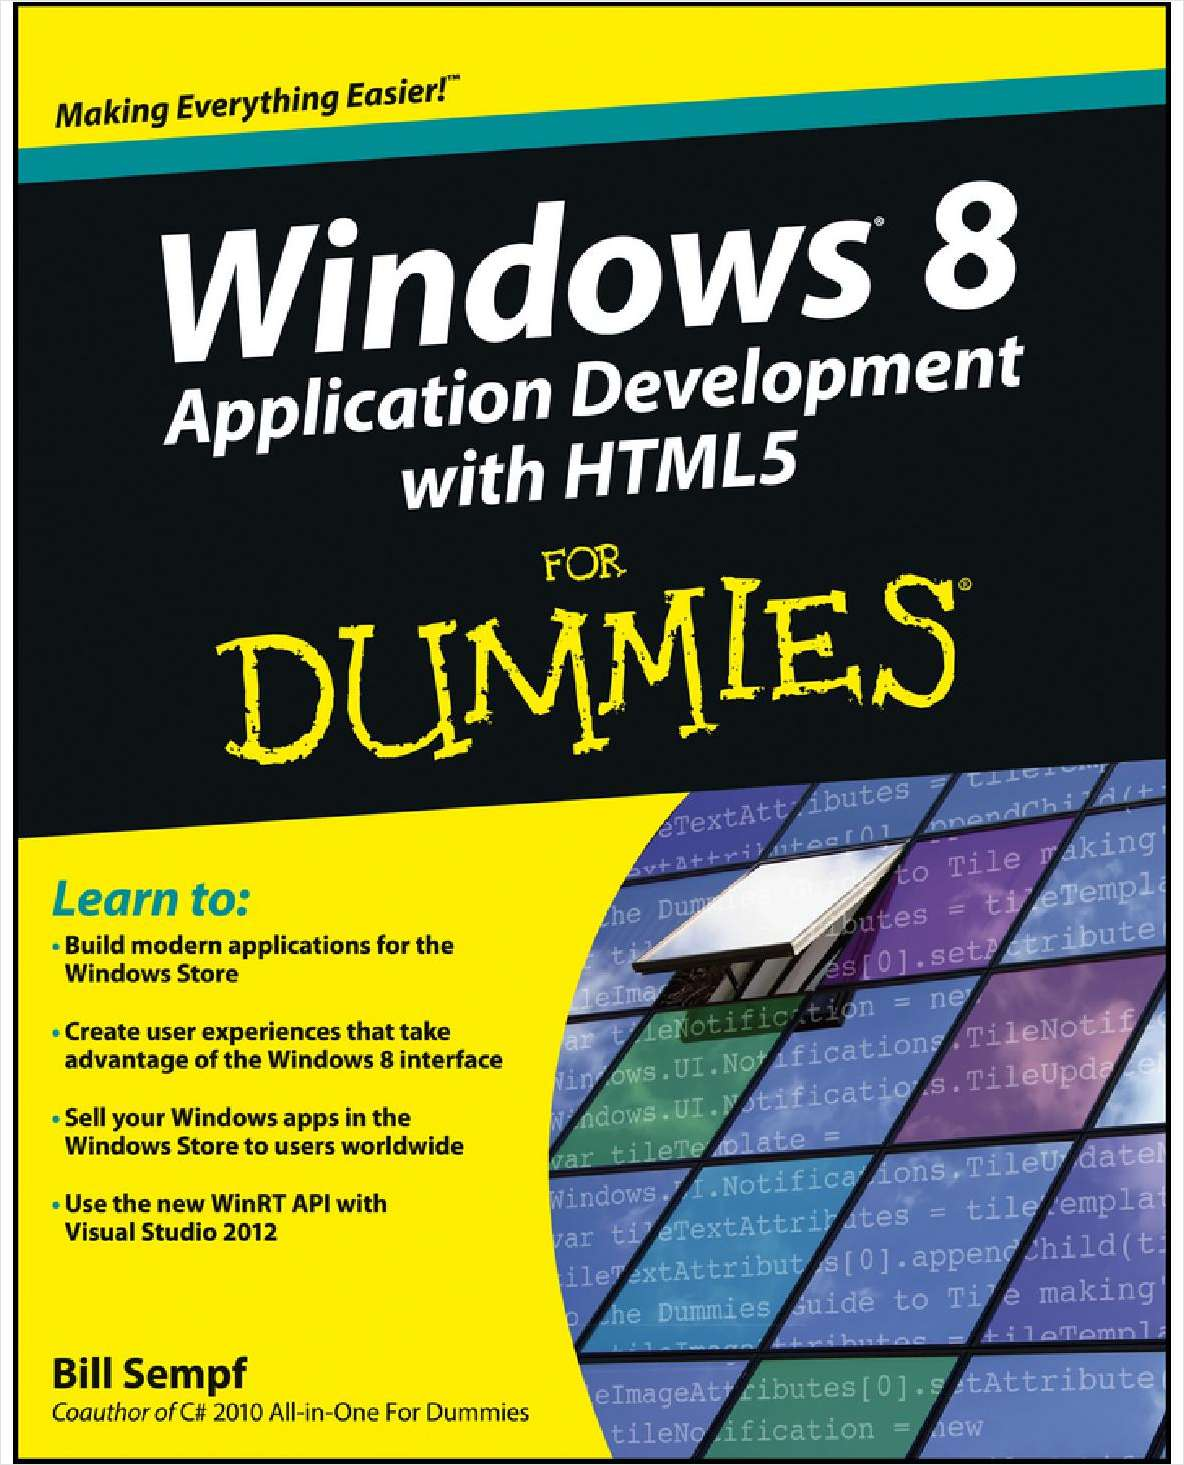 Windows 8 Application Development with HTML5 For Dummies--Free Sample Chapters